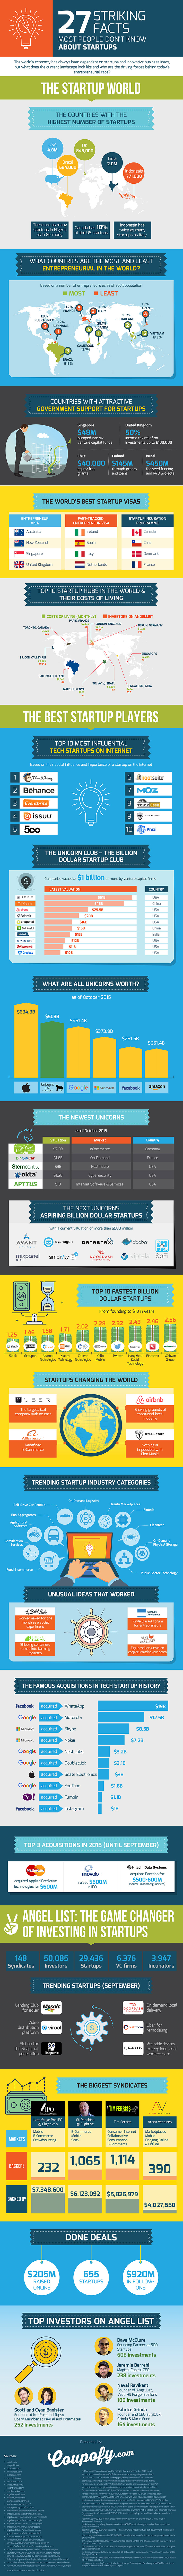 27 Striking Facts Most People Don't Know About Startups [Infographic]